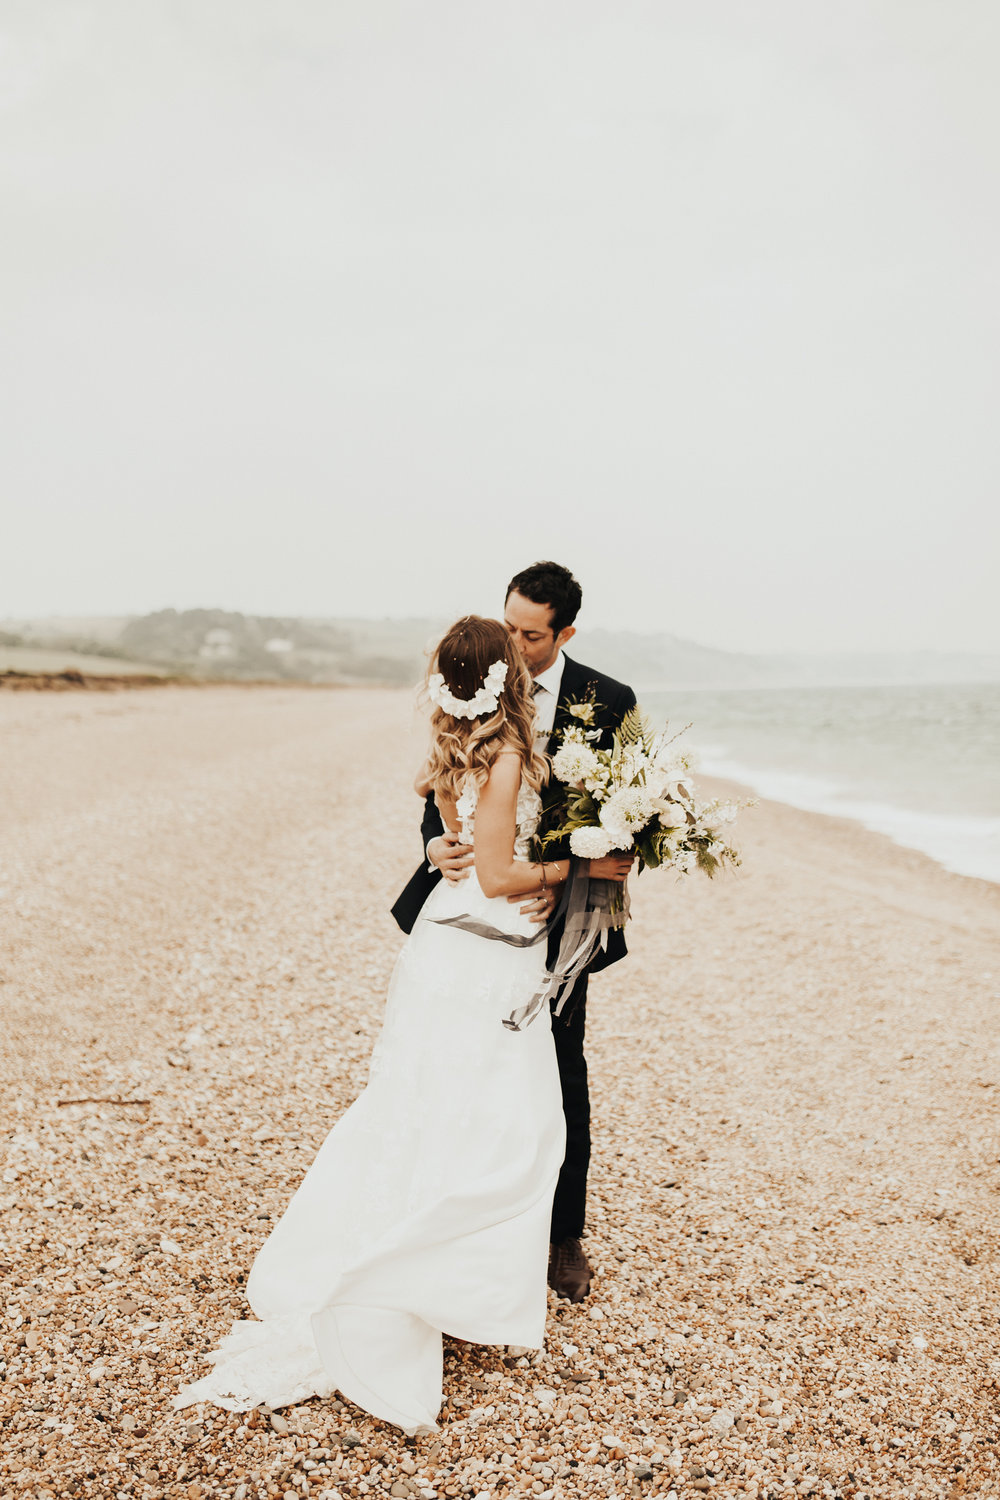 Rach-Stefan-Wedding-Devon-South-Slapton-Sands-Boho-Photography-Darina-Stoda-447.jpg